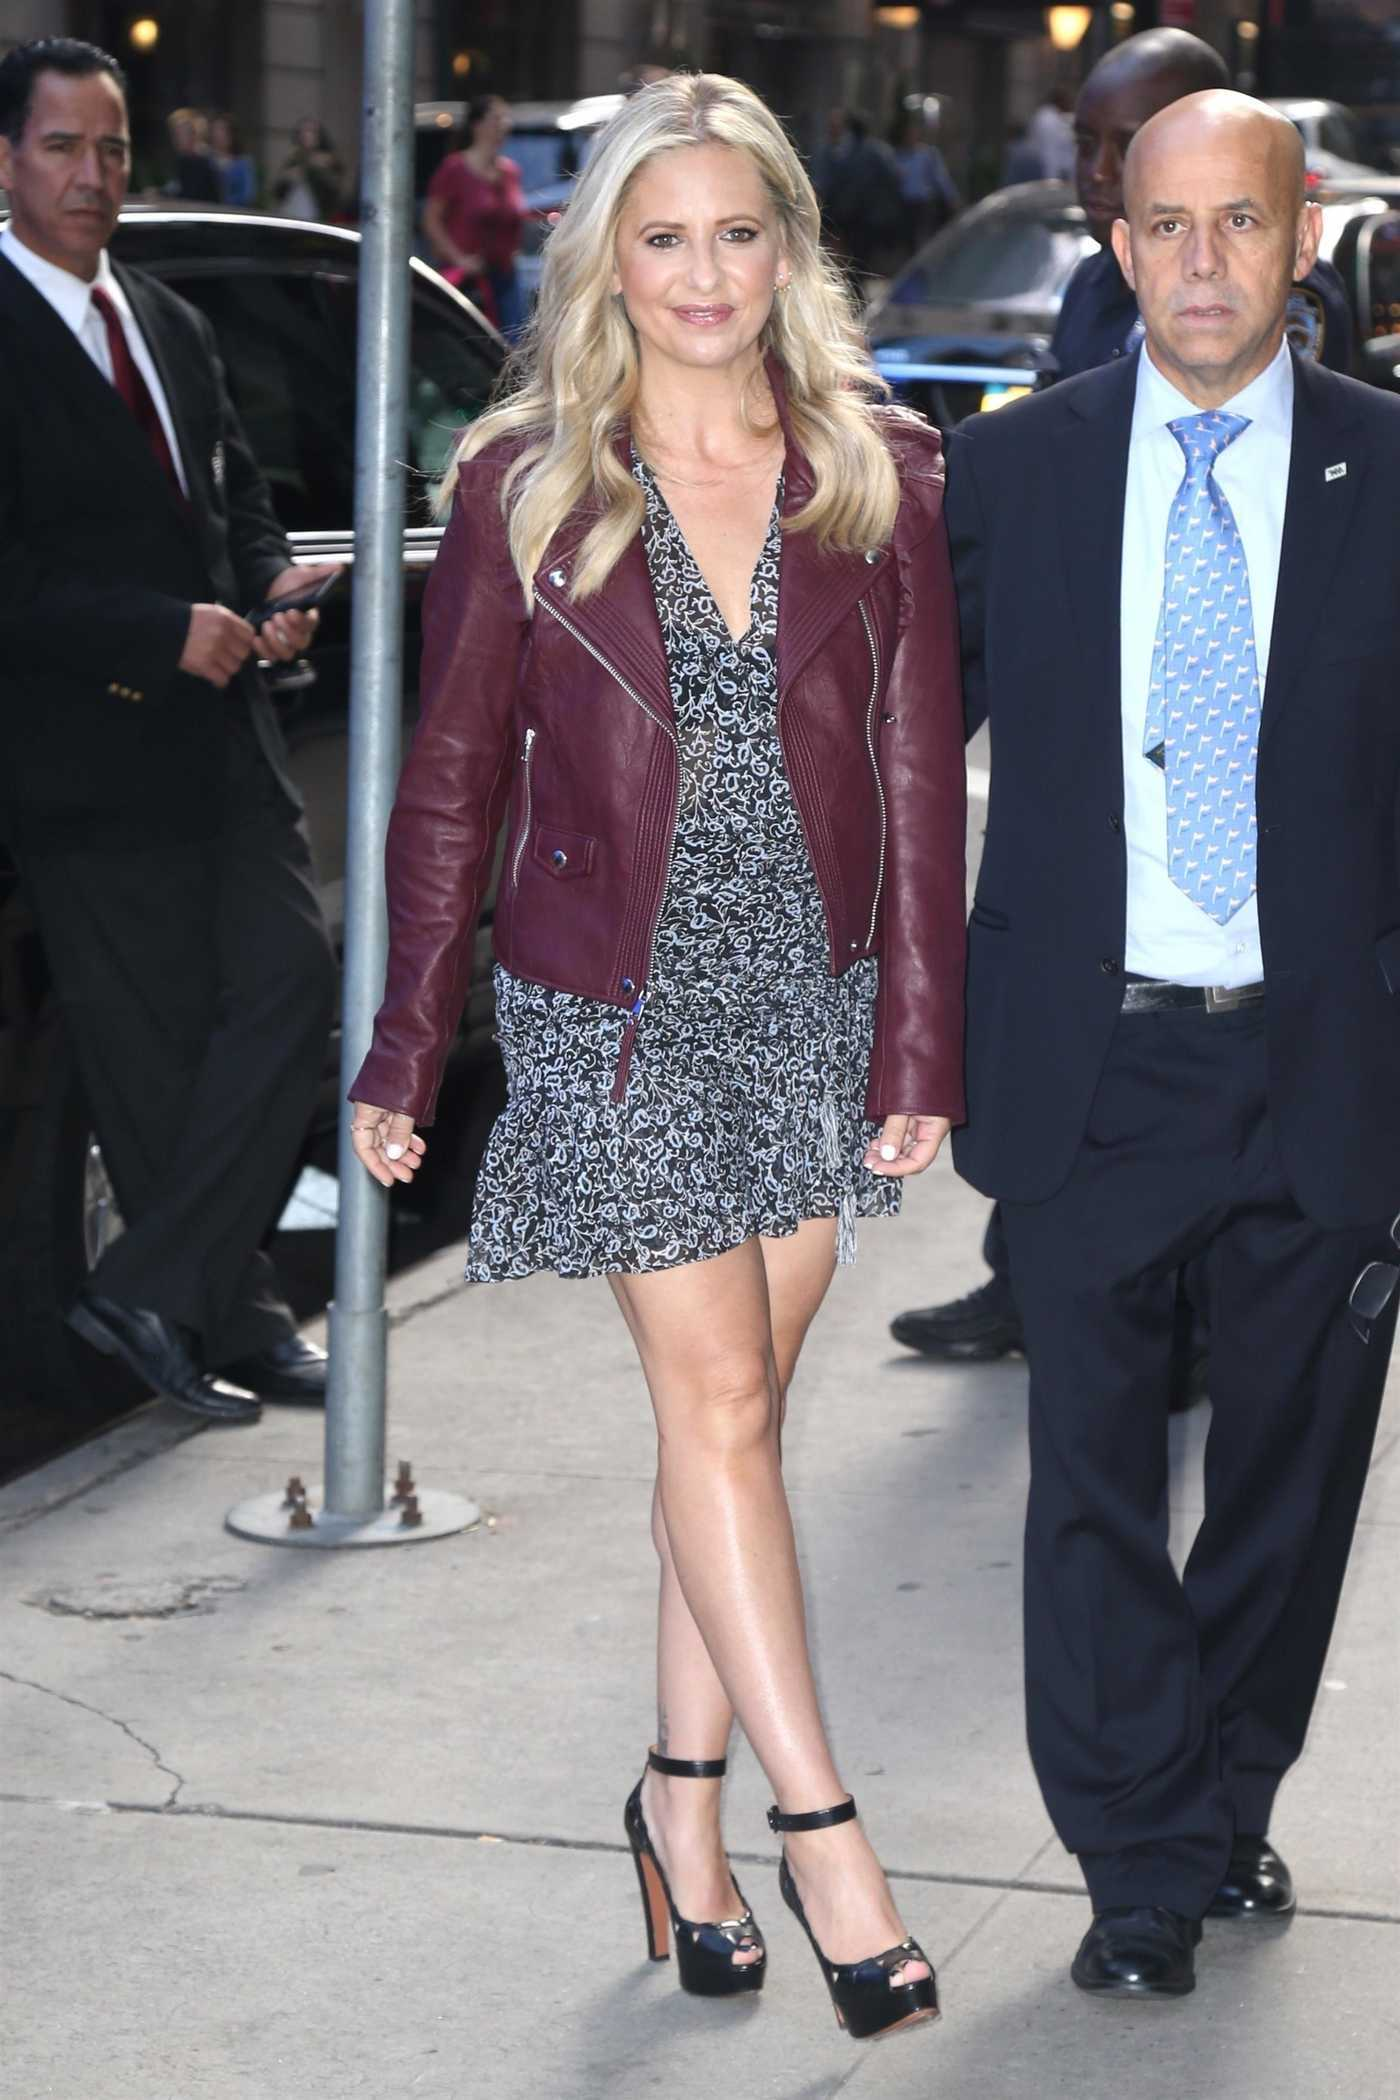 Sarah Michelle Gellar in a Purple Leather Jacket Arrives at the Good Morning America Show in New York 09/27/2018